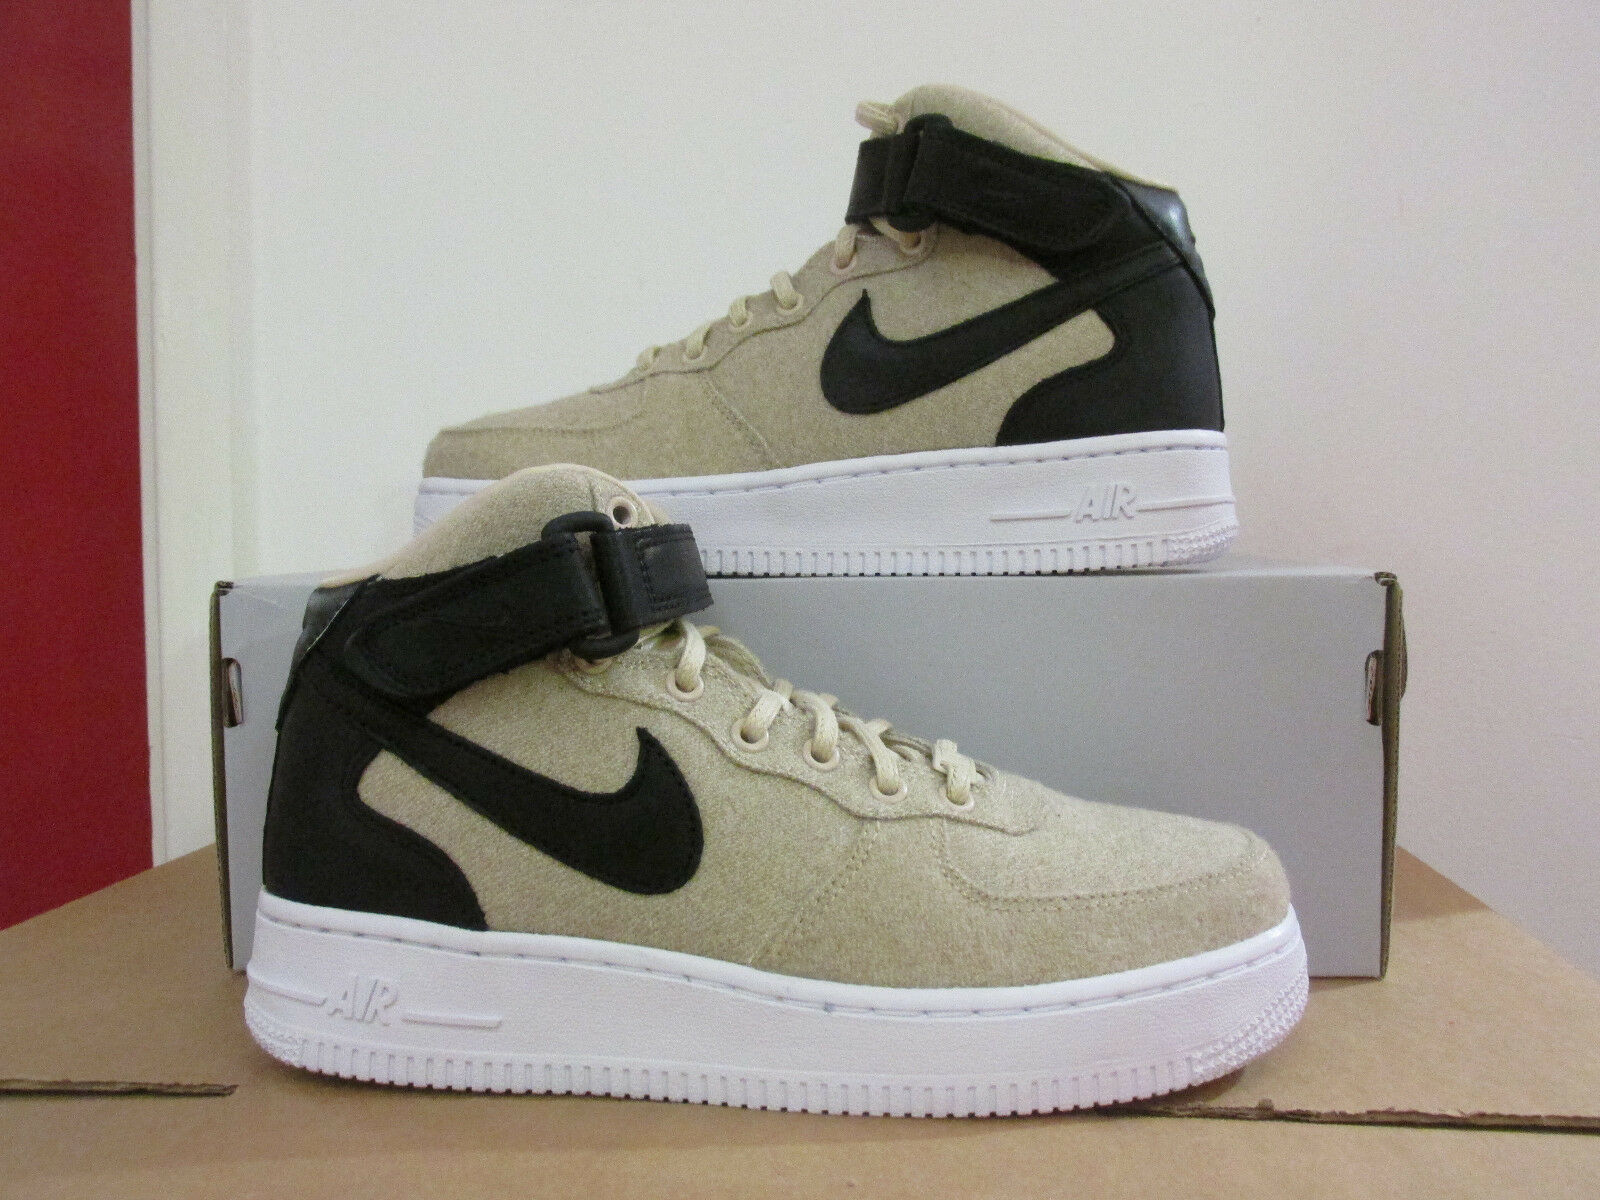 Nike Womens Air Force 1 07 Mid LTHR PRM Hi Top Trainers 857666 001 CLEARANCE